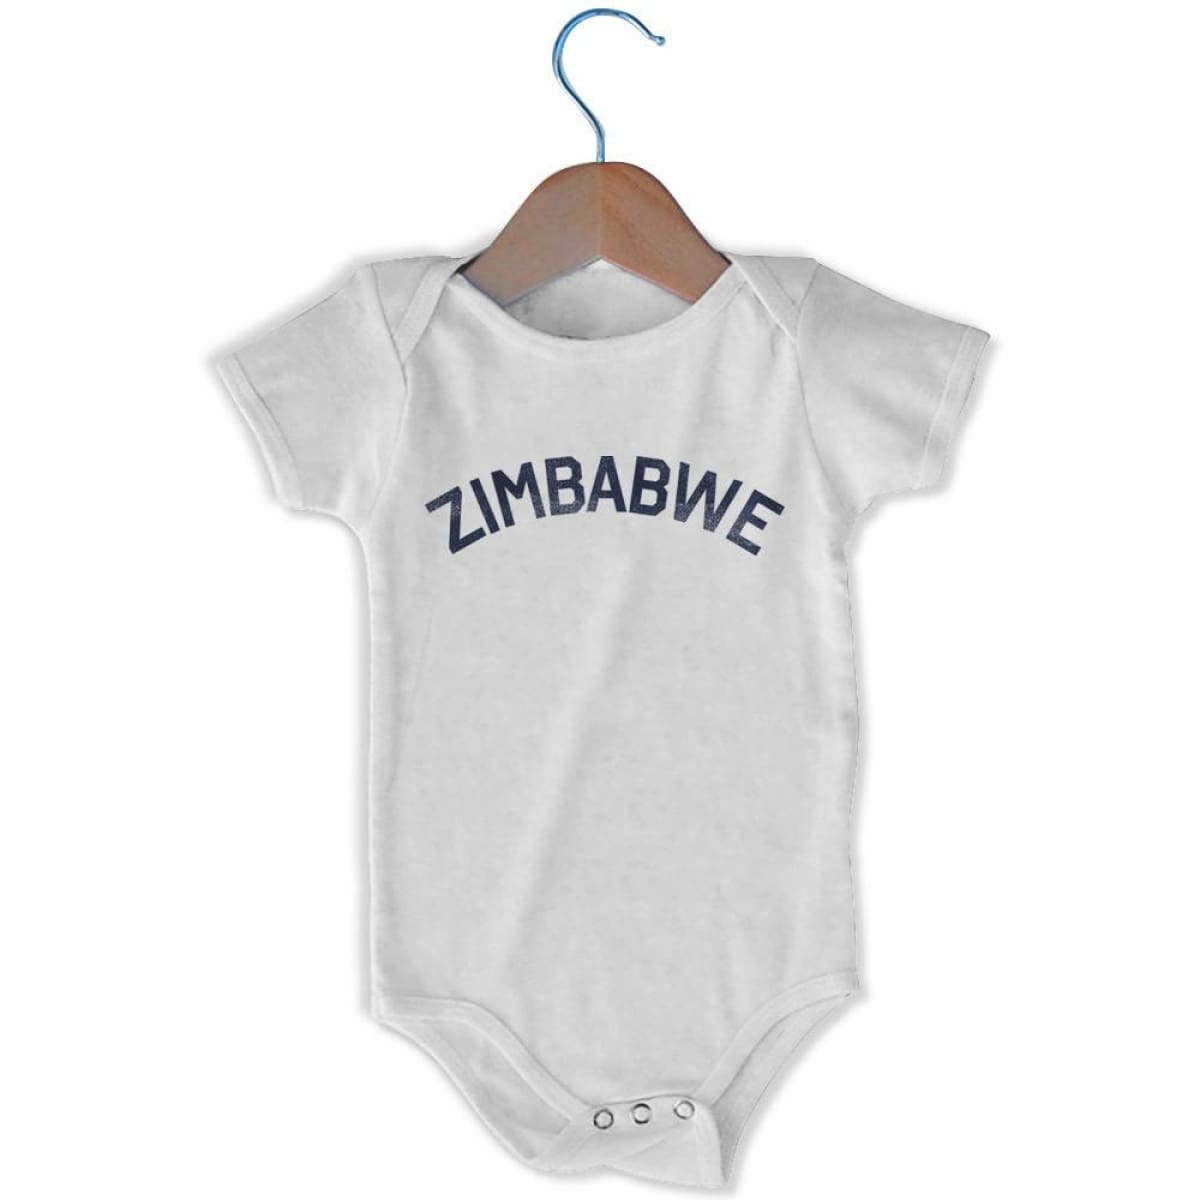 Zimbabwe City Infant Onesie - White / 6 - 9 Months - Mile End City